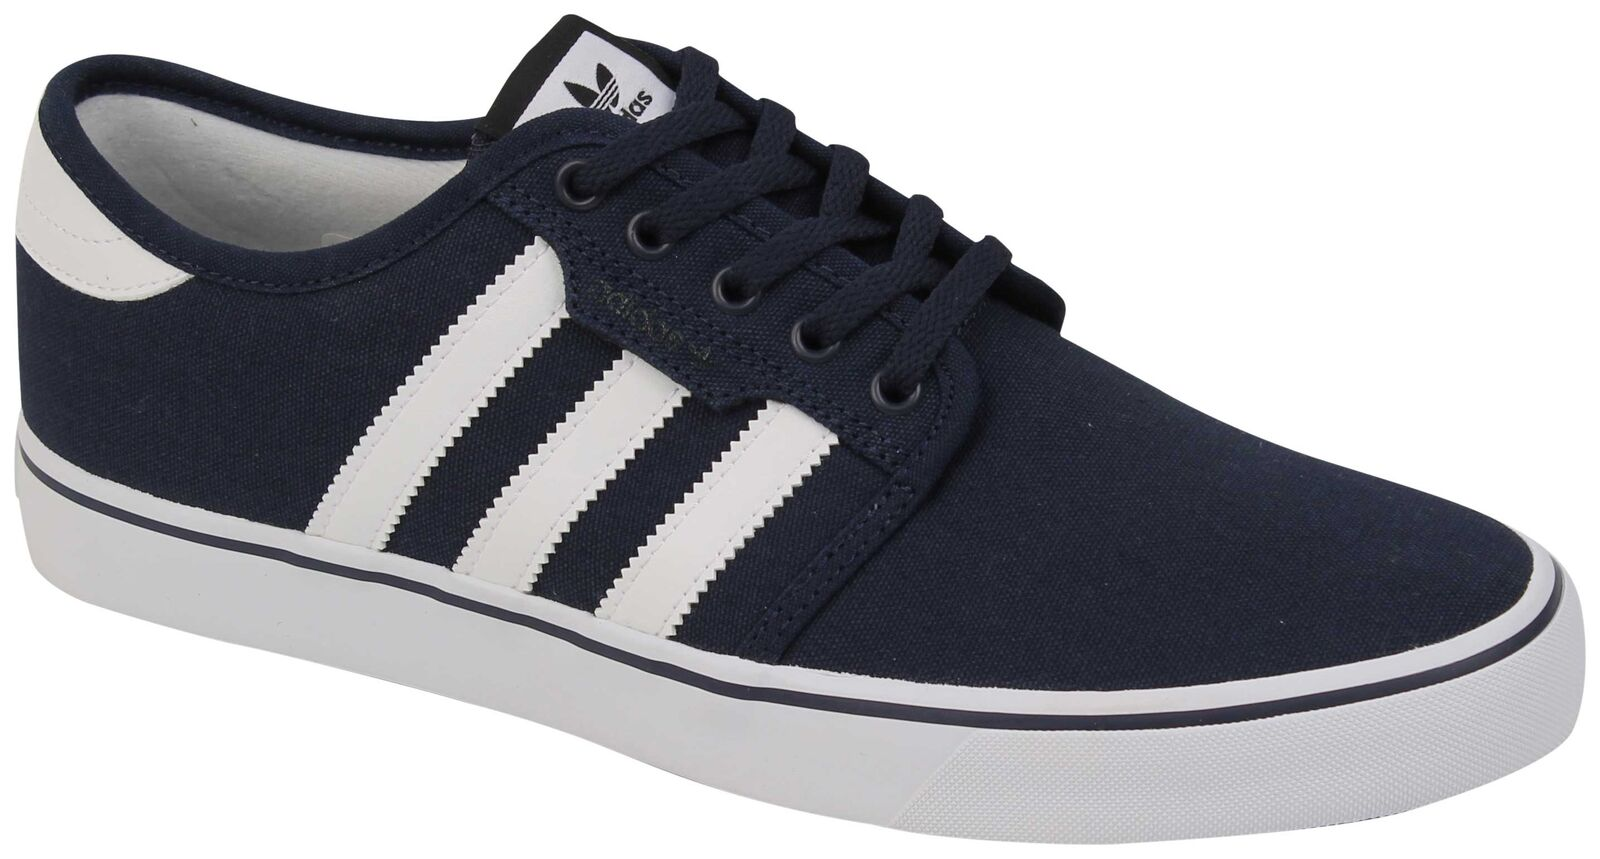 Adidas Seeley shoes - Collegiate Navy   White   Black - New